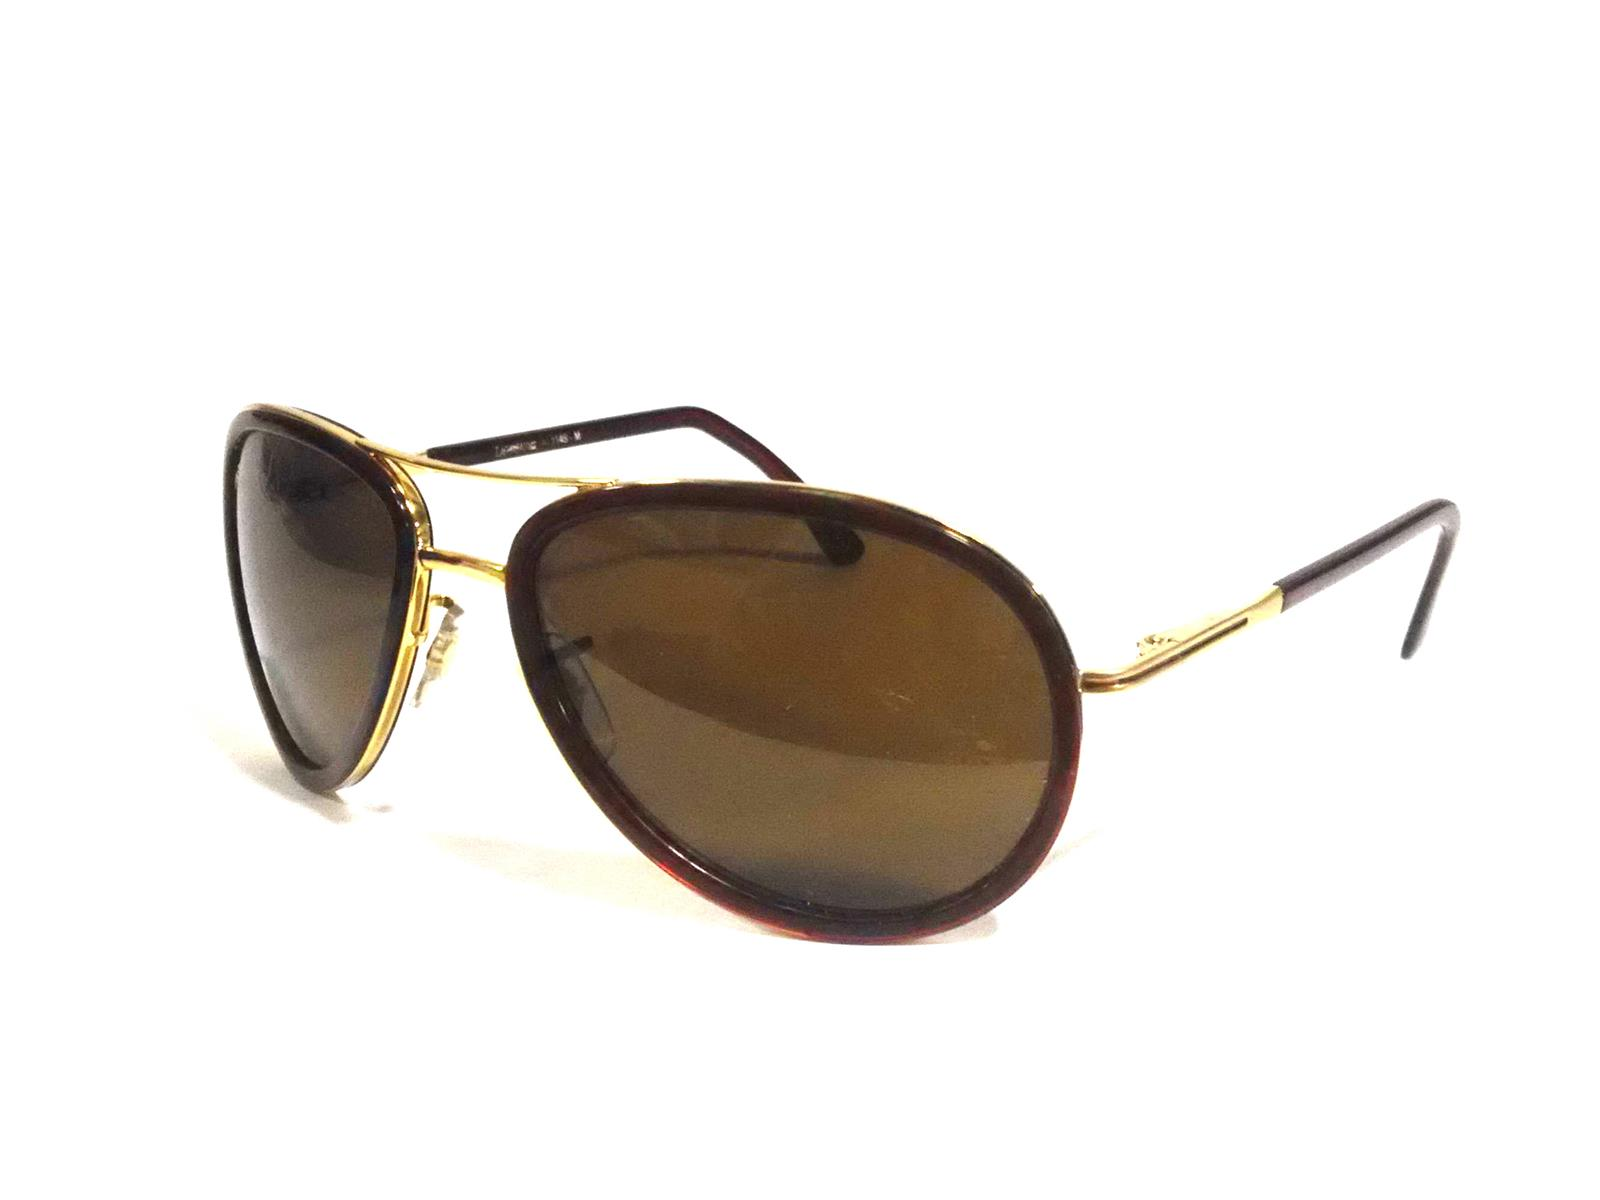 Gold Aviator Sunglasses for Large Face with Brown Border